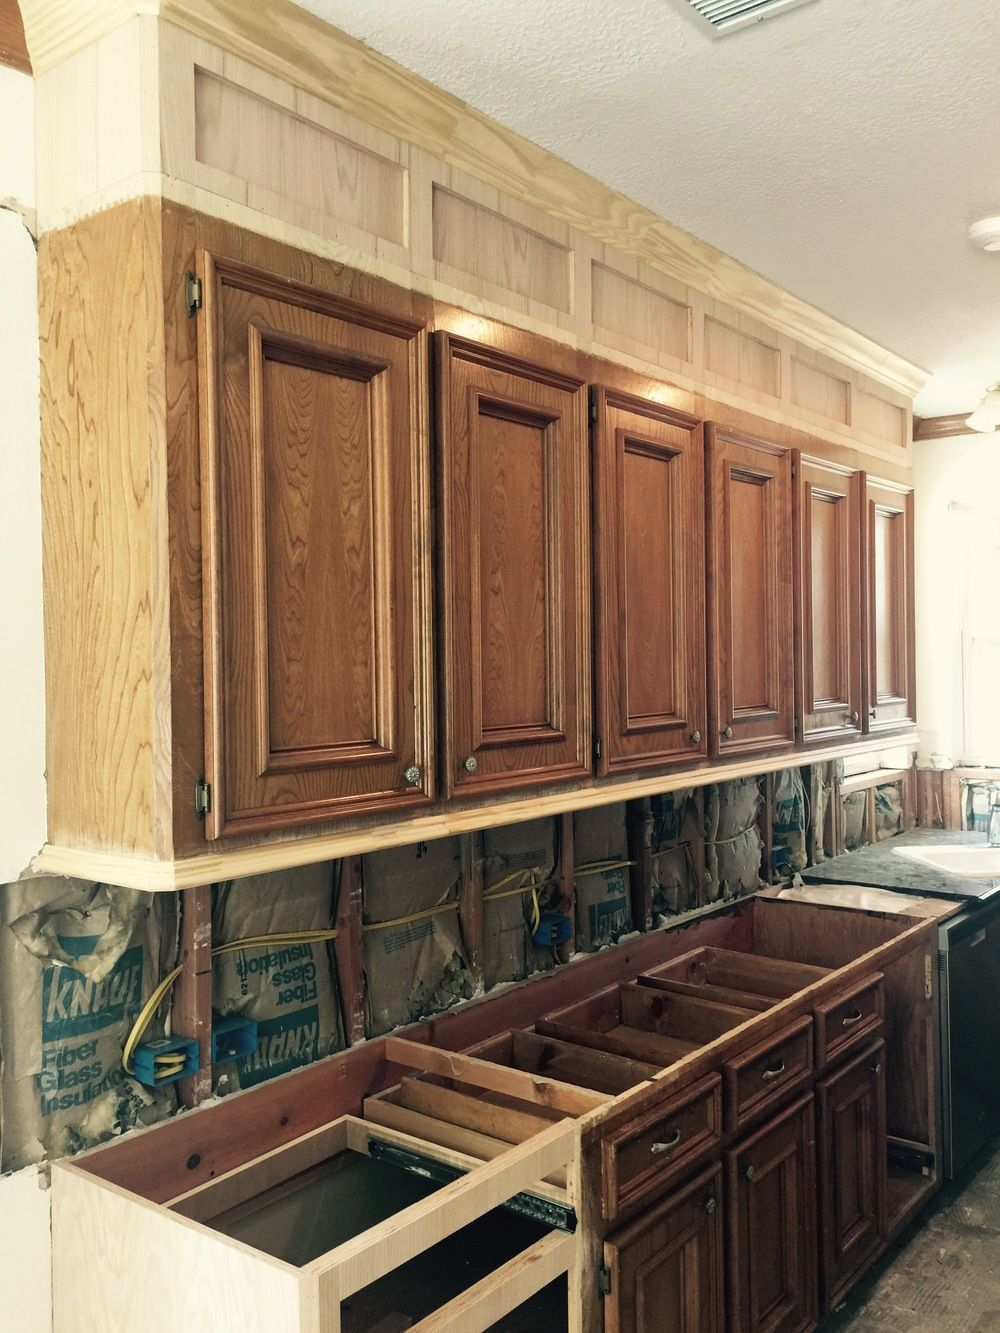 Okay So I Already Know What You Re Going To Say You Should Paint Them Are You Sure About T Kitchen Soffit Kitchen Cabinets To Ceiling Old Kitchen Cabinets